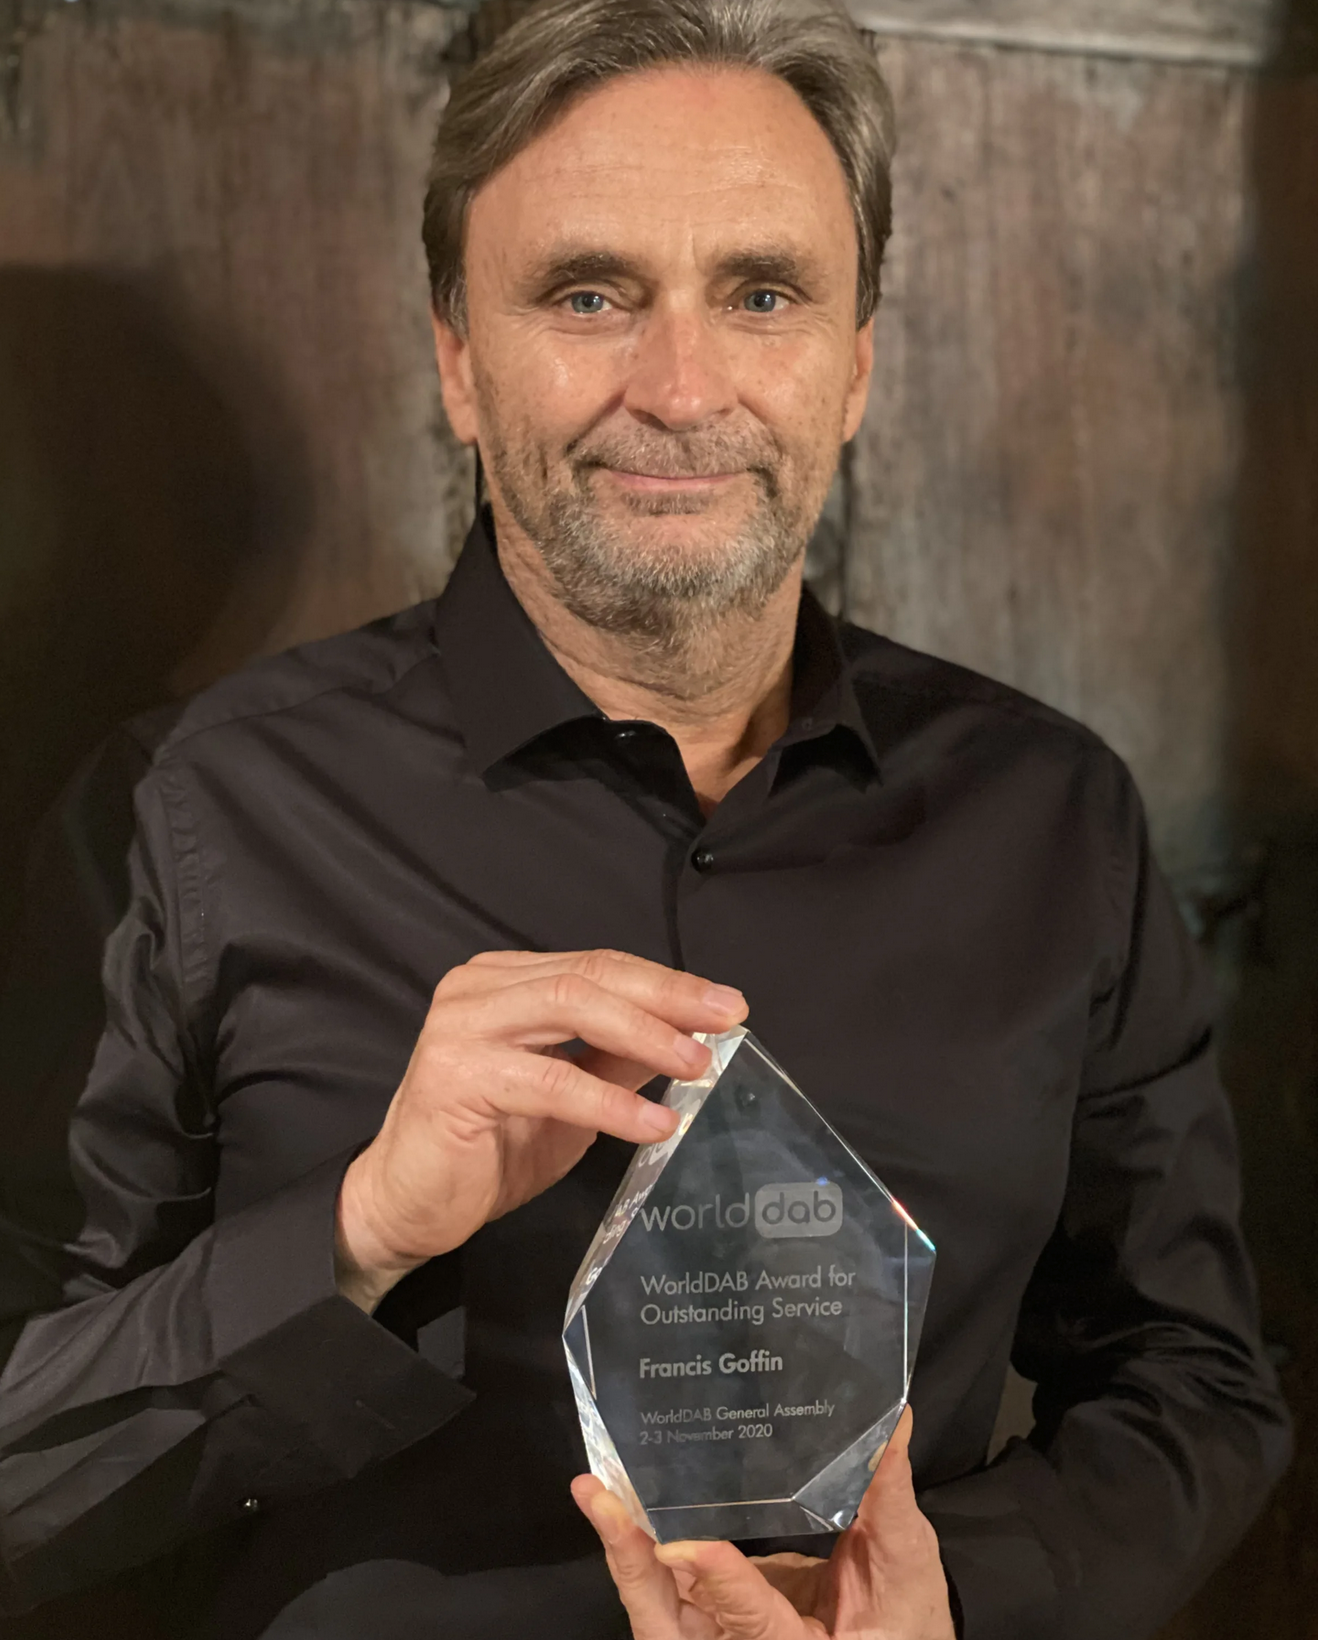 """Francis Goffin reçoit le """"WorldDAB Award for Outstanding Service"""""""